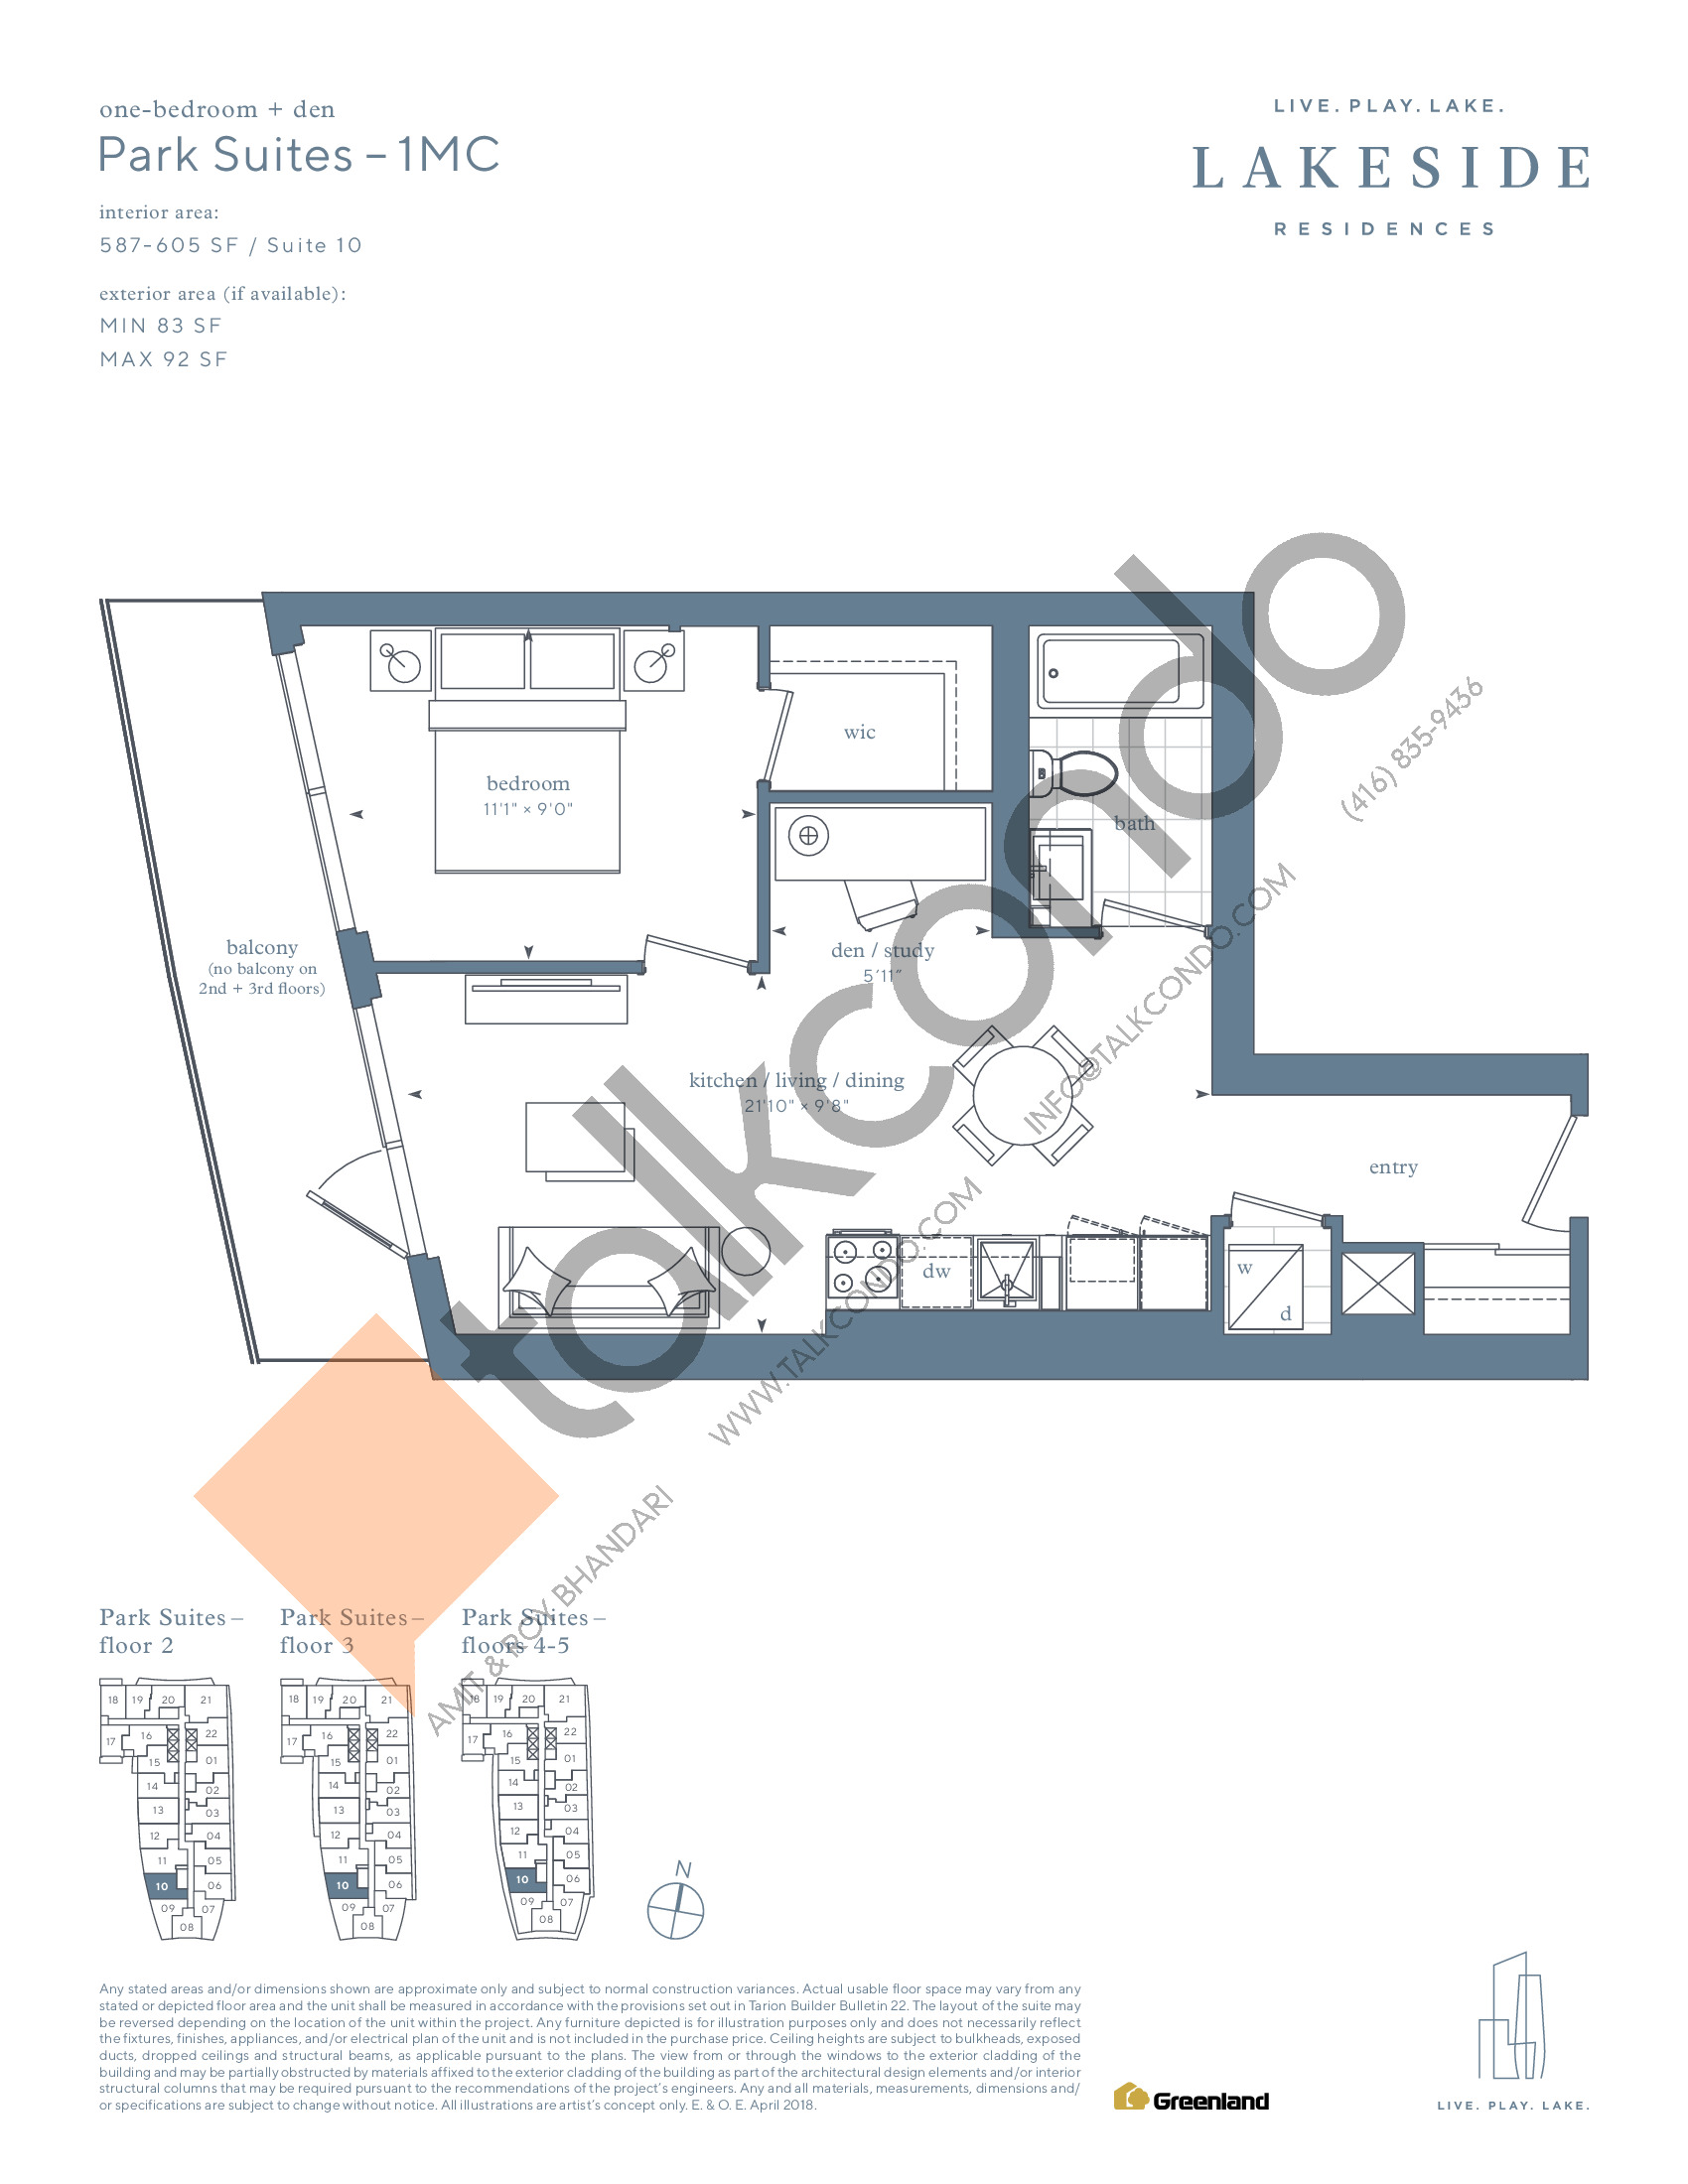 Park Suites - 1MC Floor Plan at Lakeside Residences - 605 sq.ft